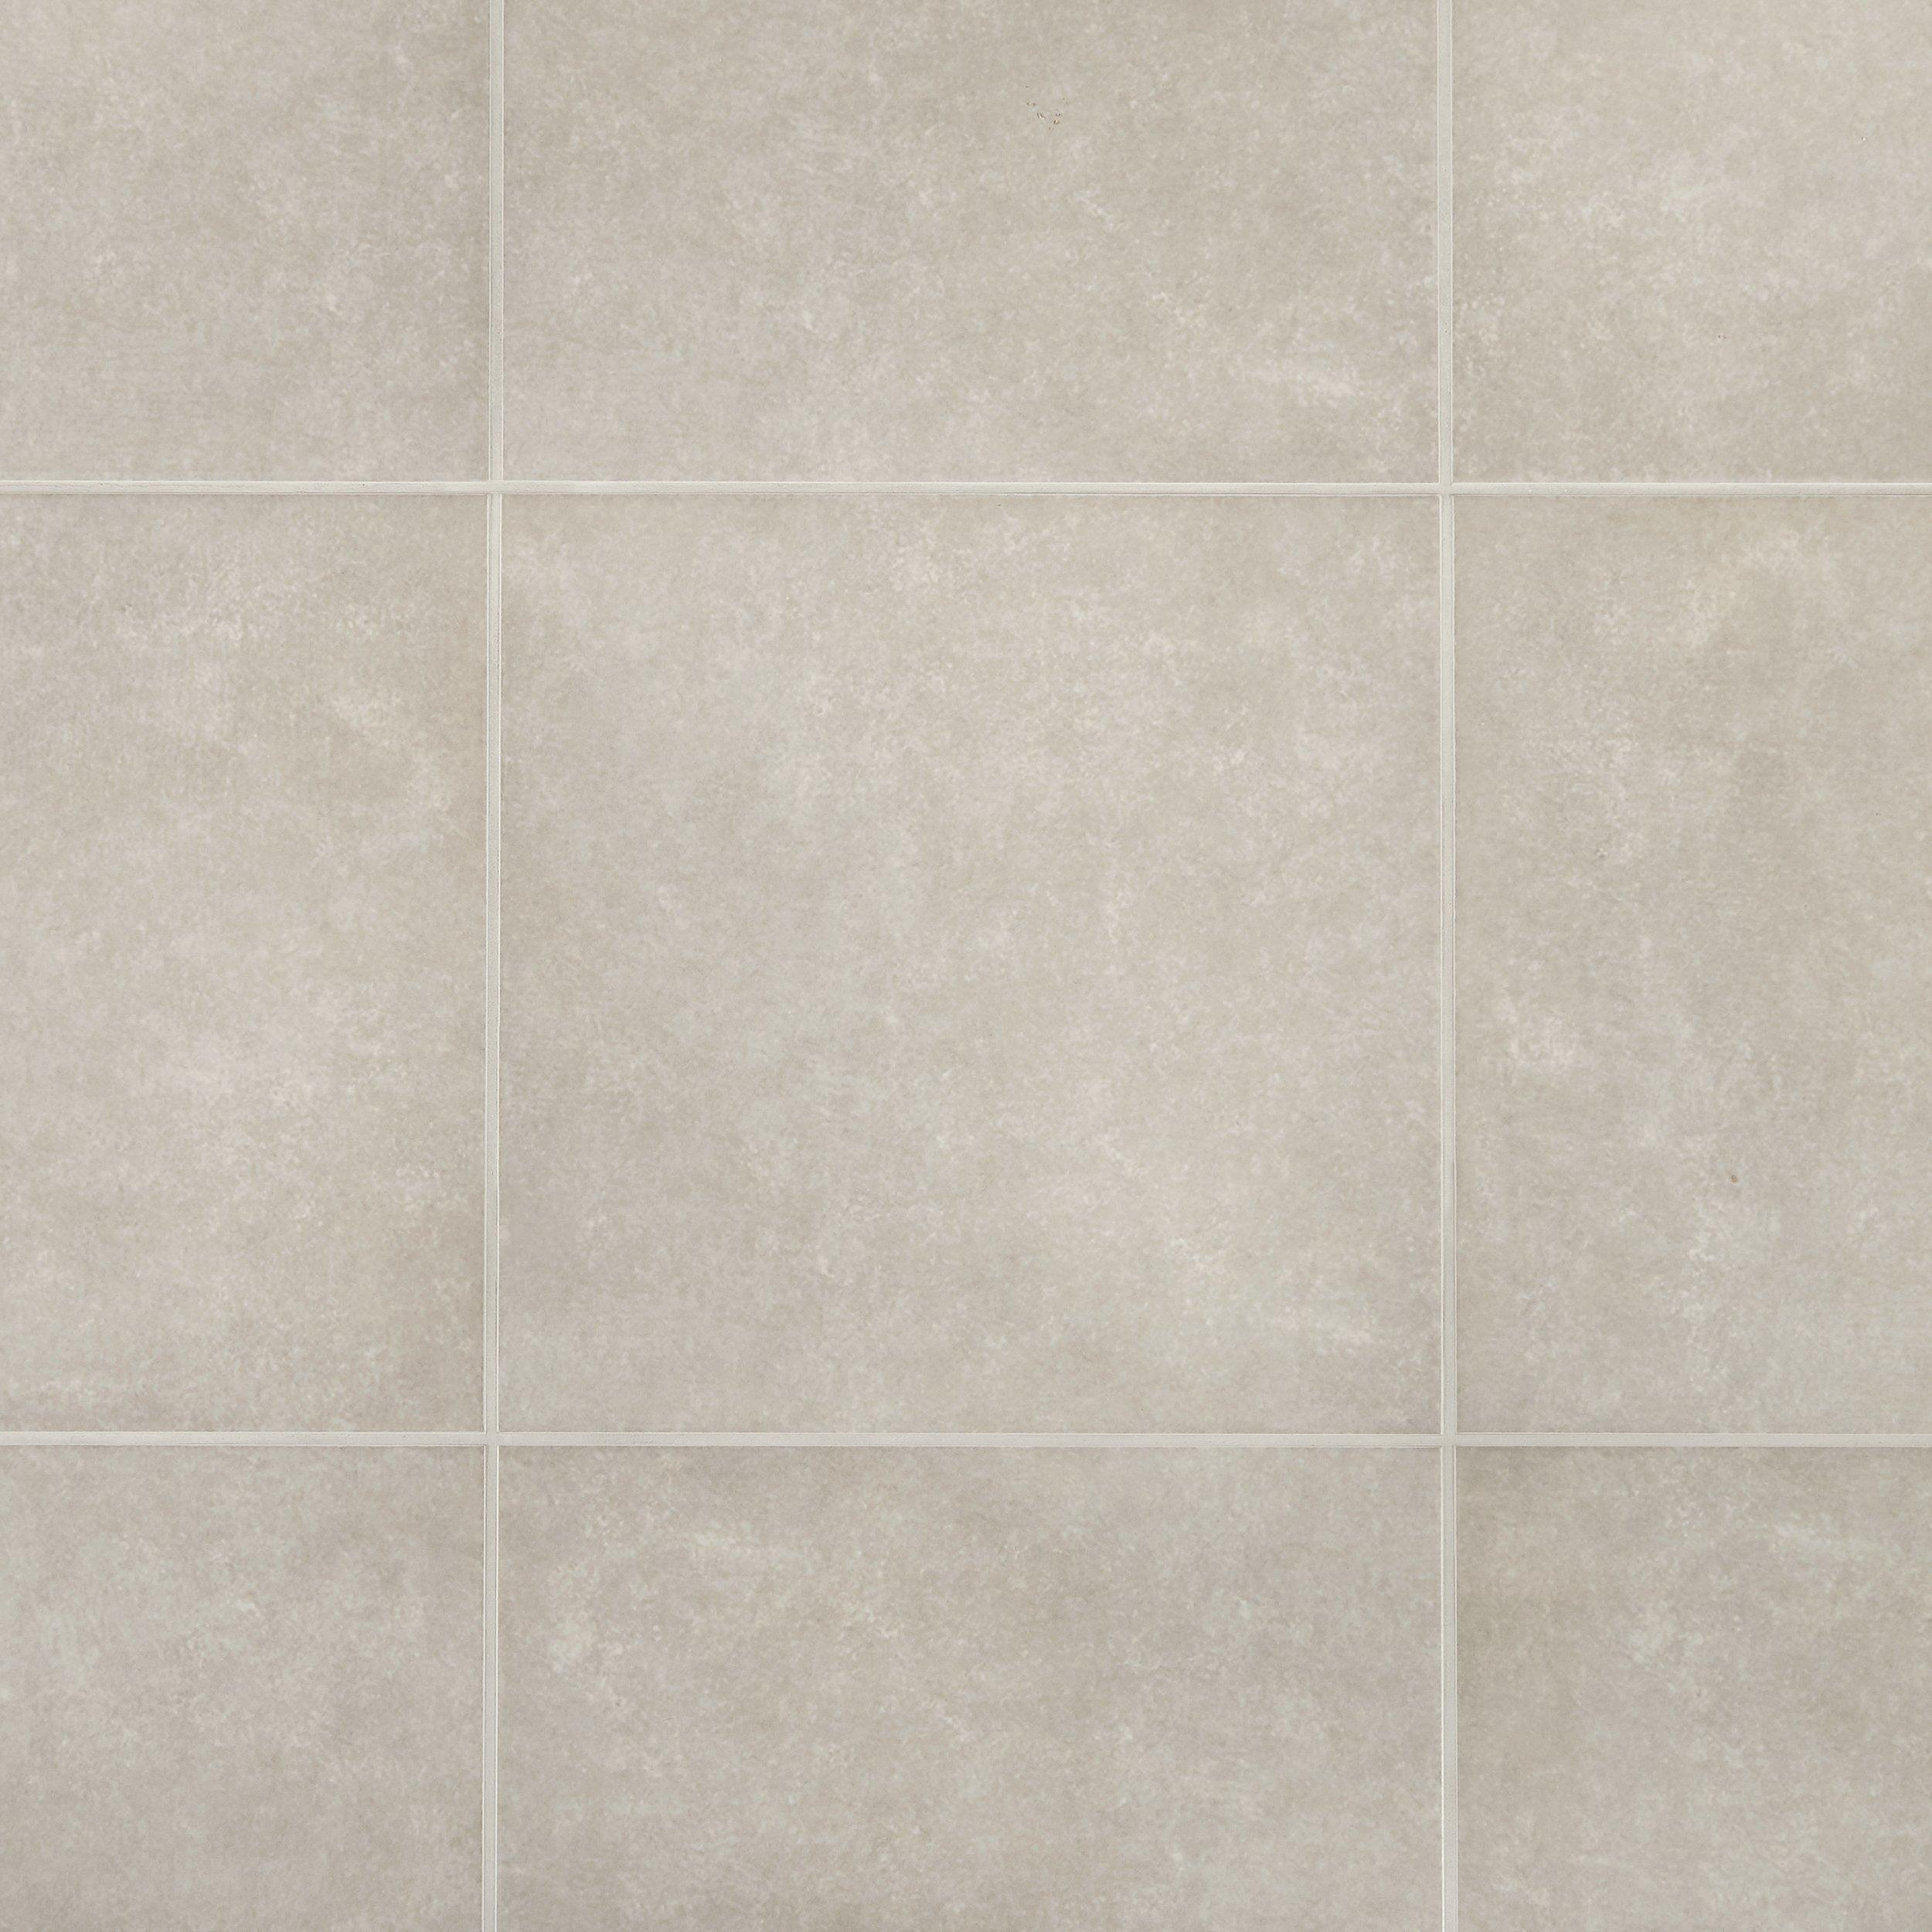 Ceramic tile tile flooring floor decor dubai plata ceramic tile dailygadgetfo Gallery